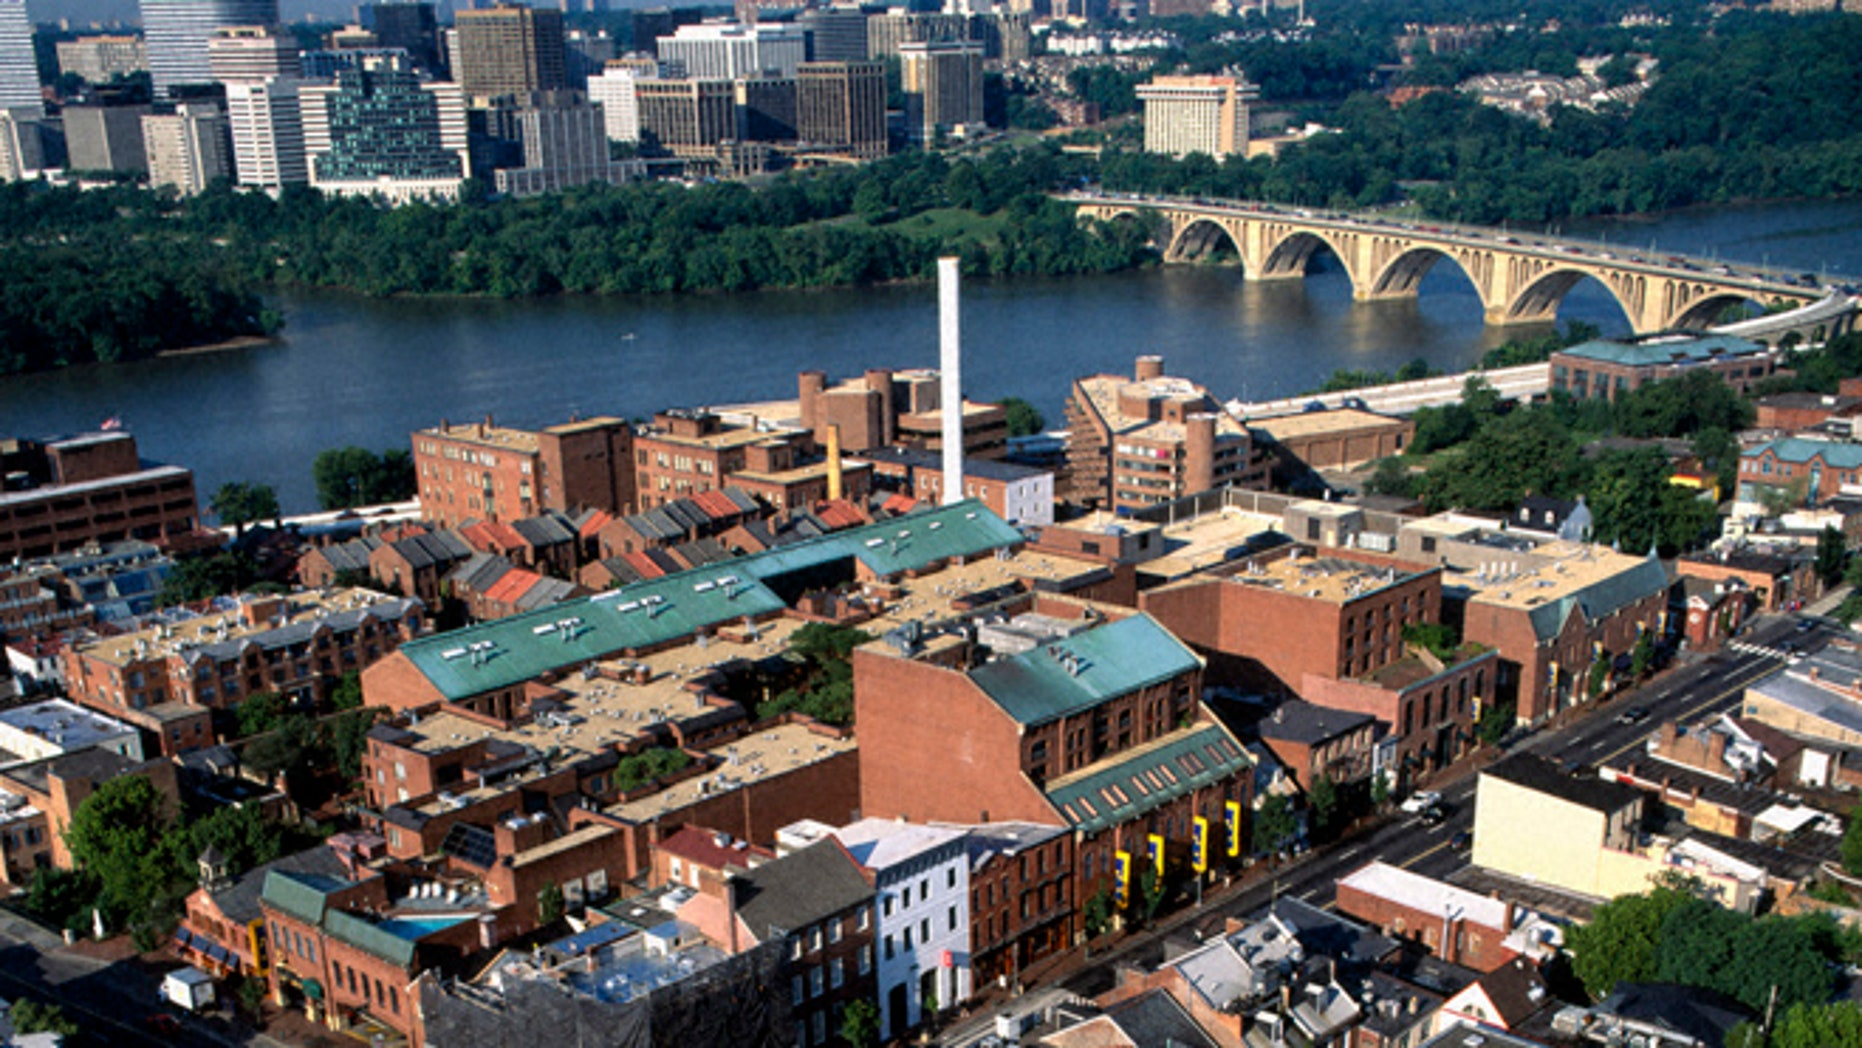 An aerial view of Georgetown